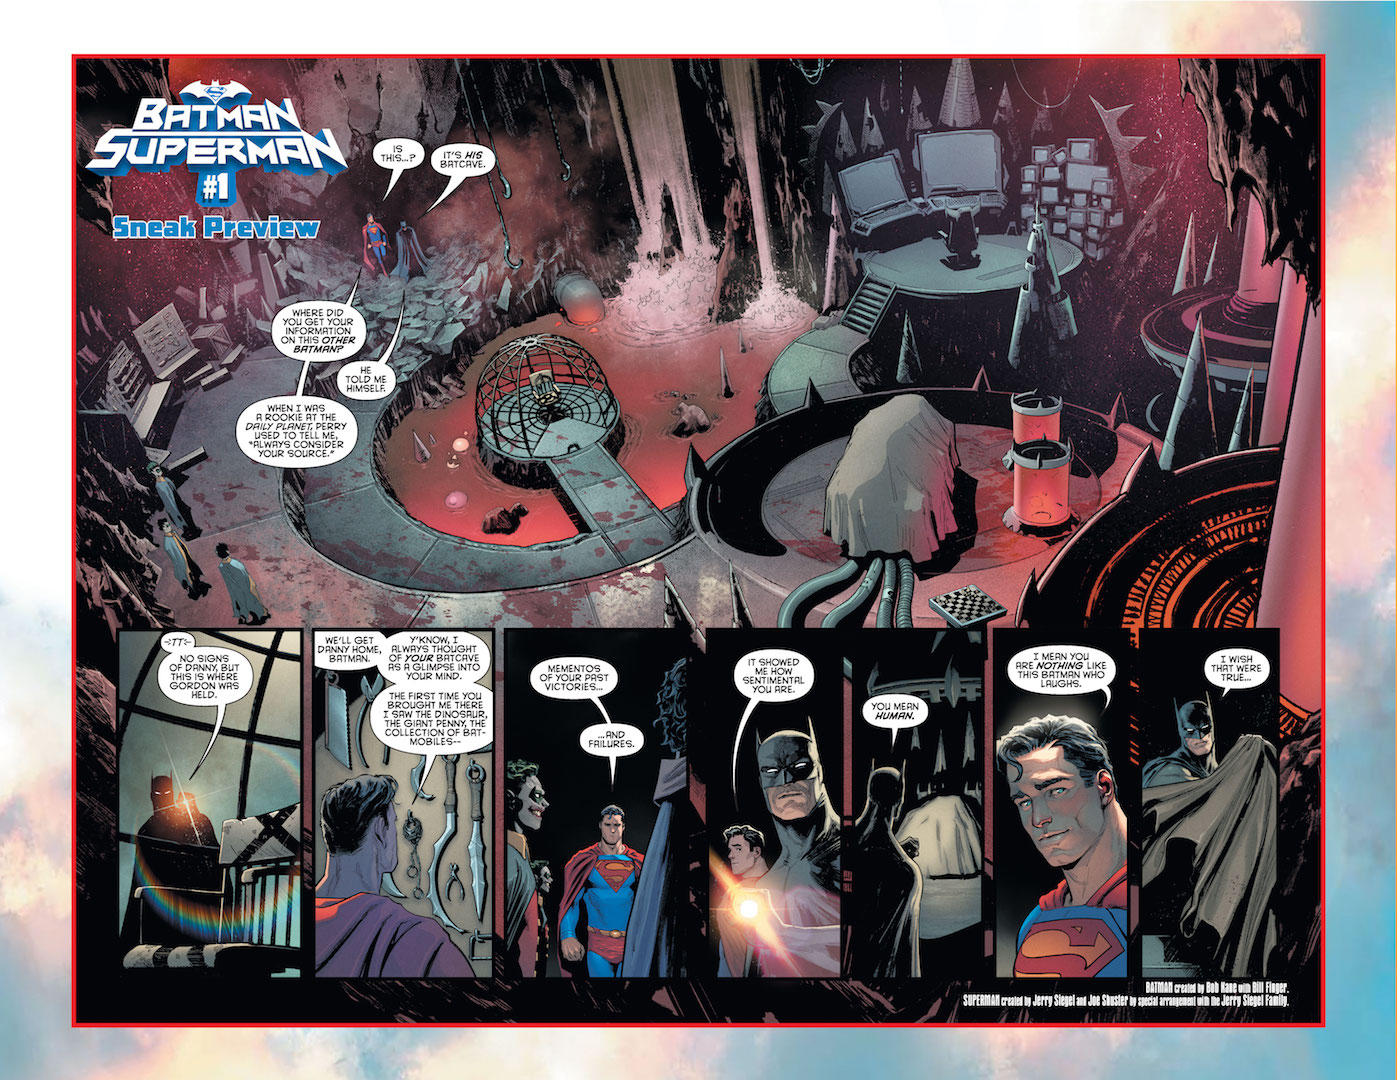 BMSM_1_PREVIEW_1_Page_1